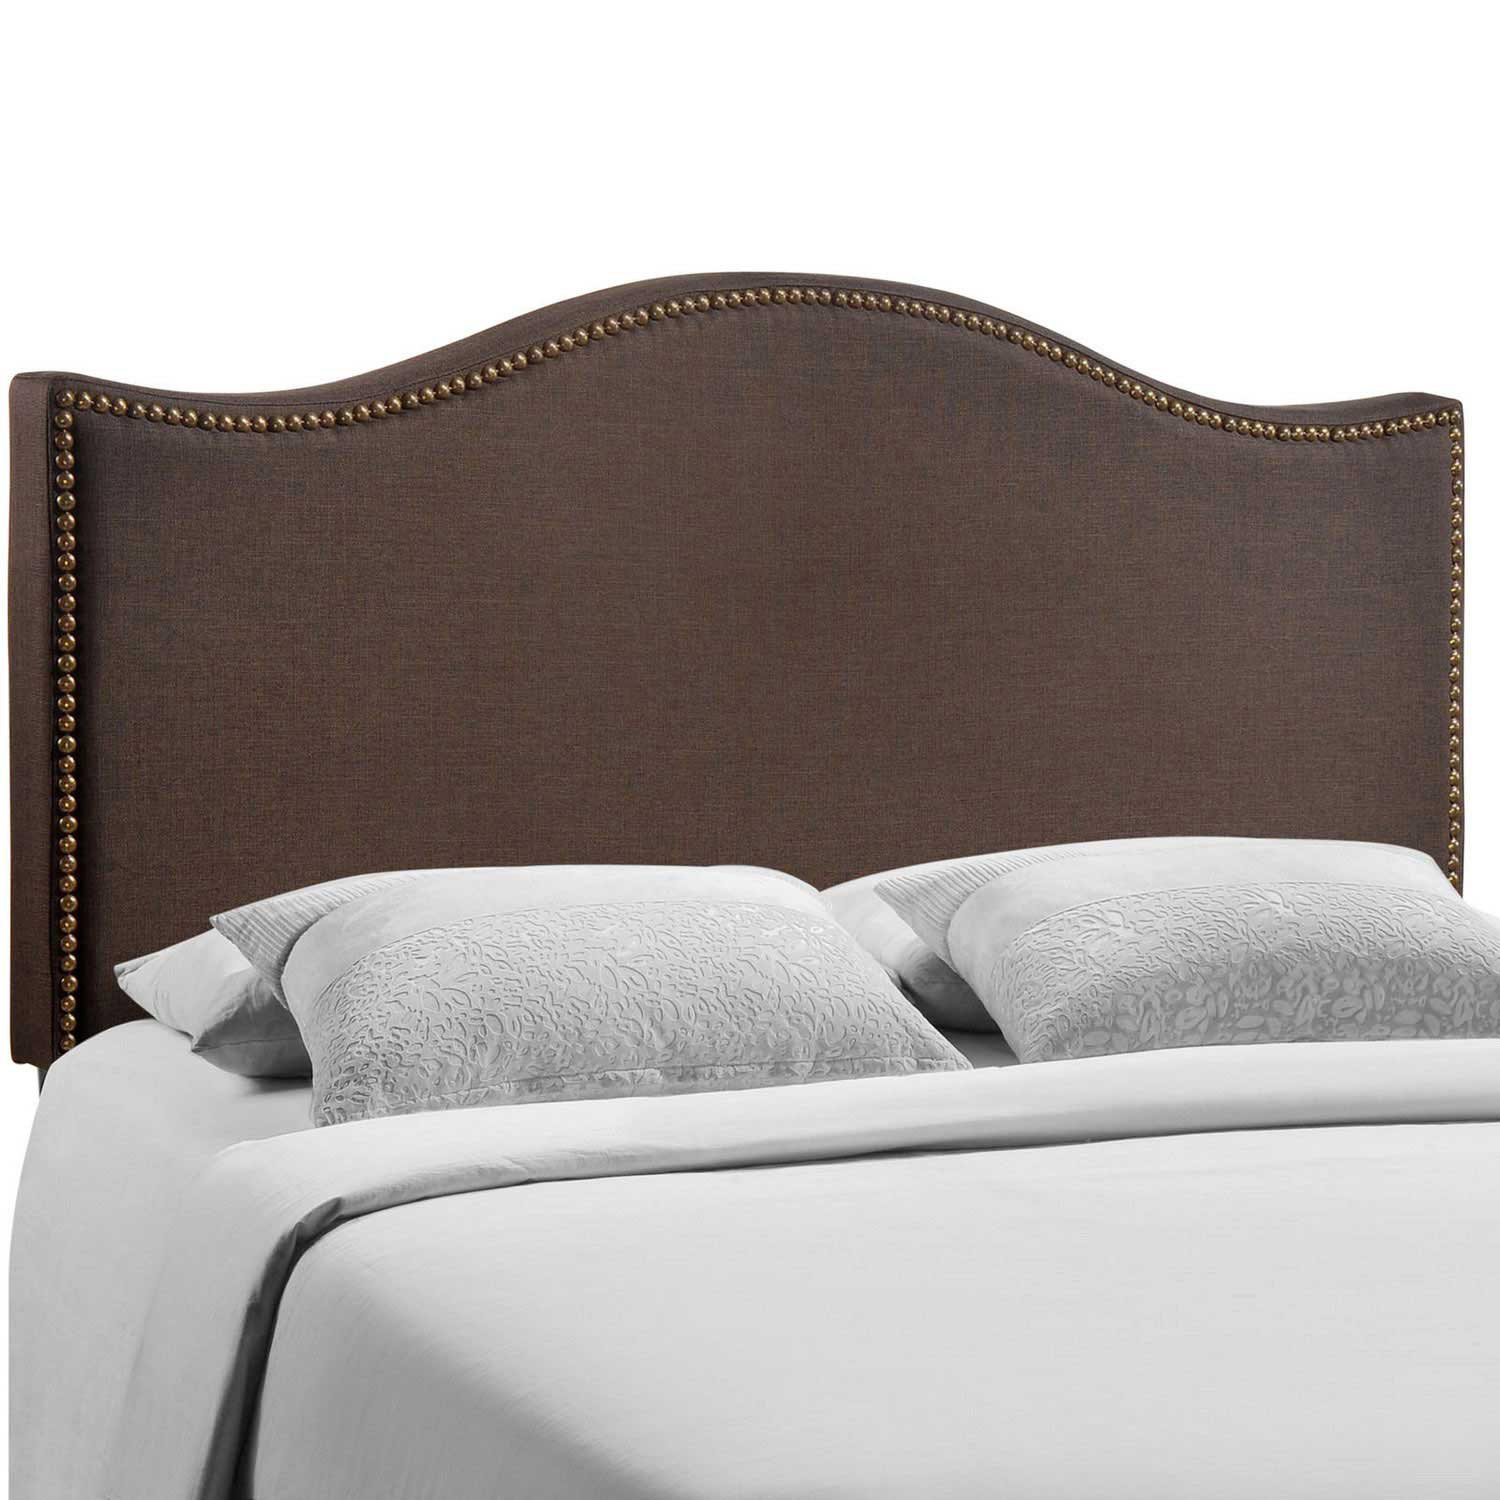 Modway Curl Queen Nailhead Upholstered Headboard - Dark Brown